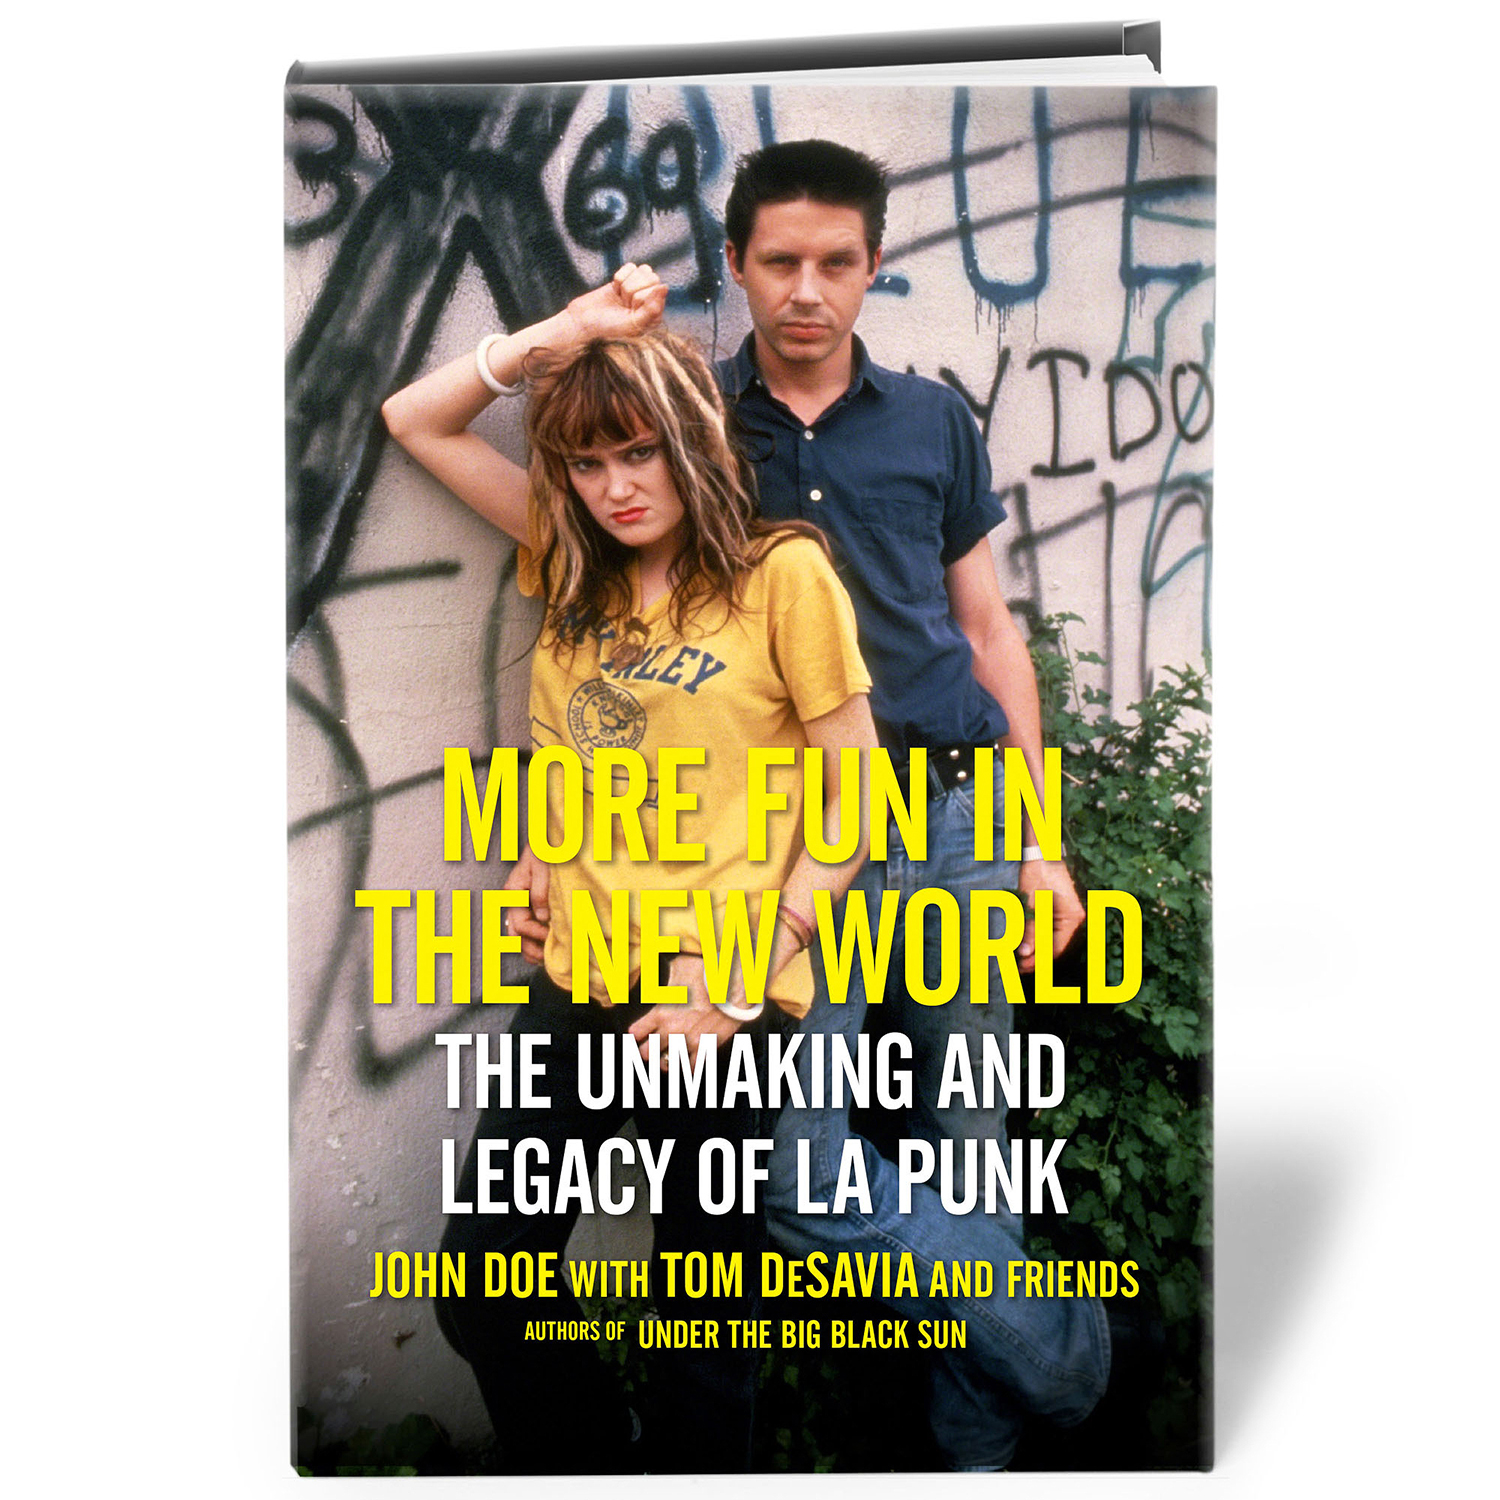 More Fun In The New World: The Unmaking and Legacy of LA Punk book